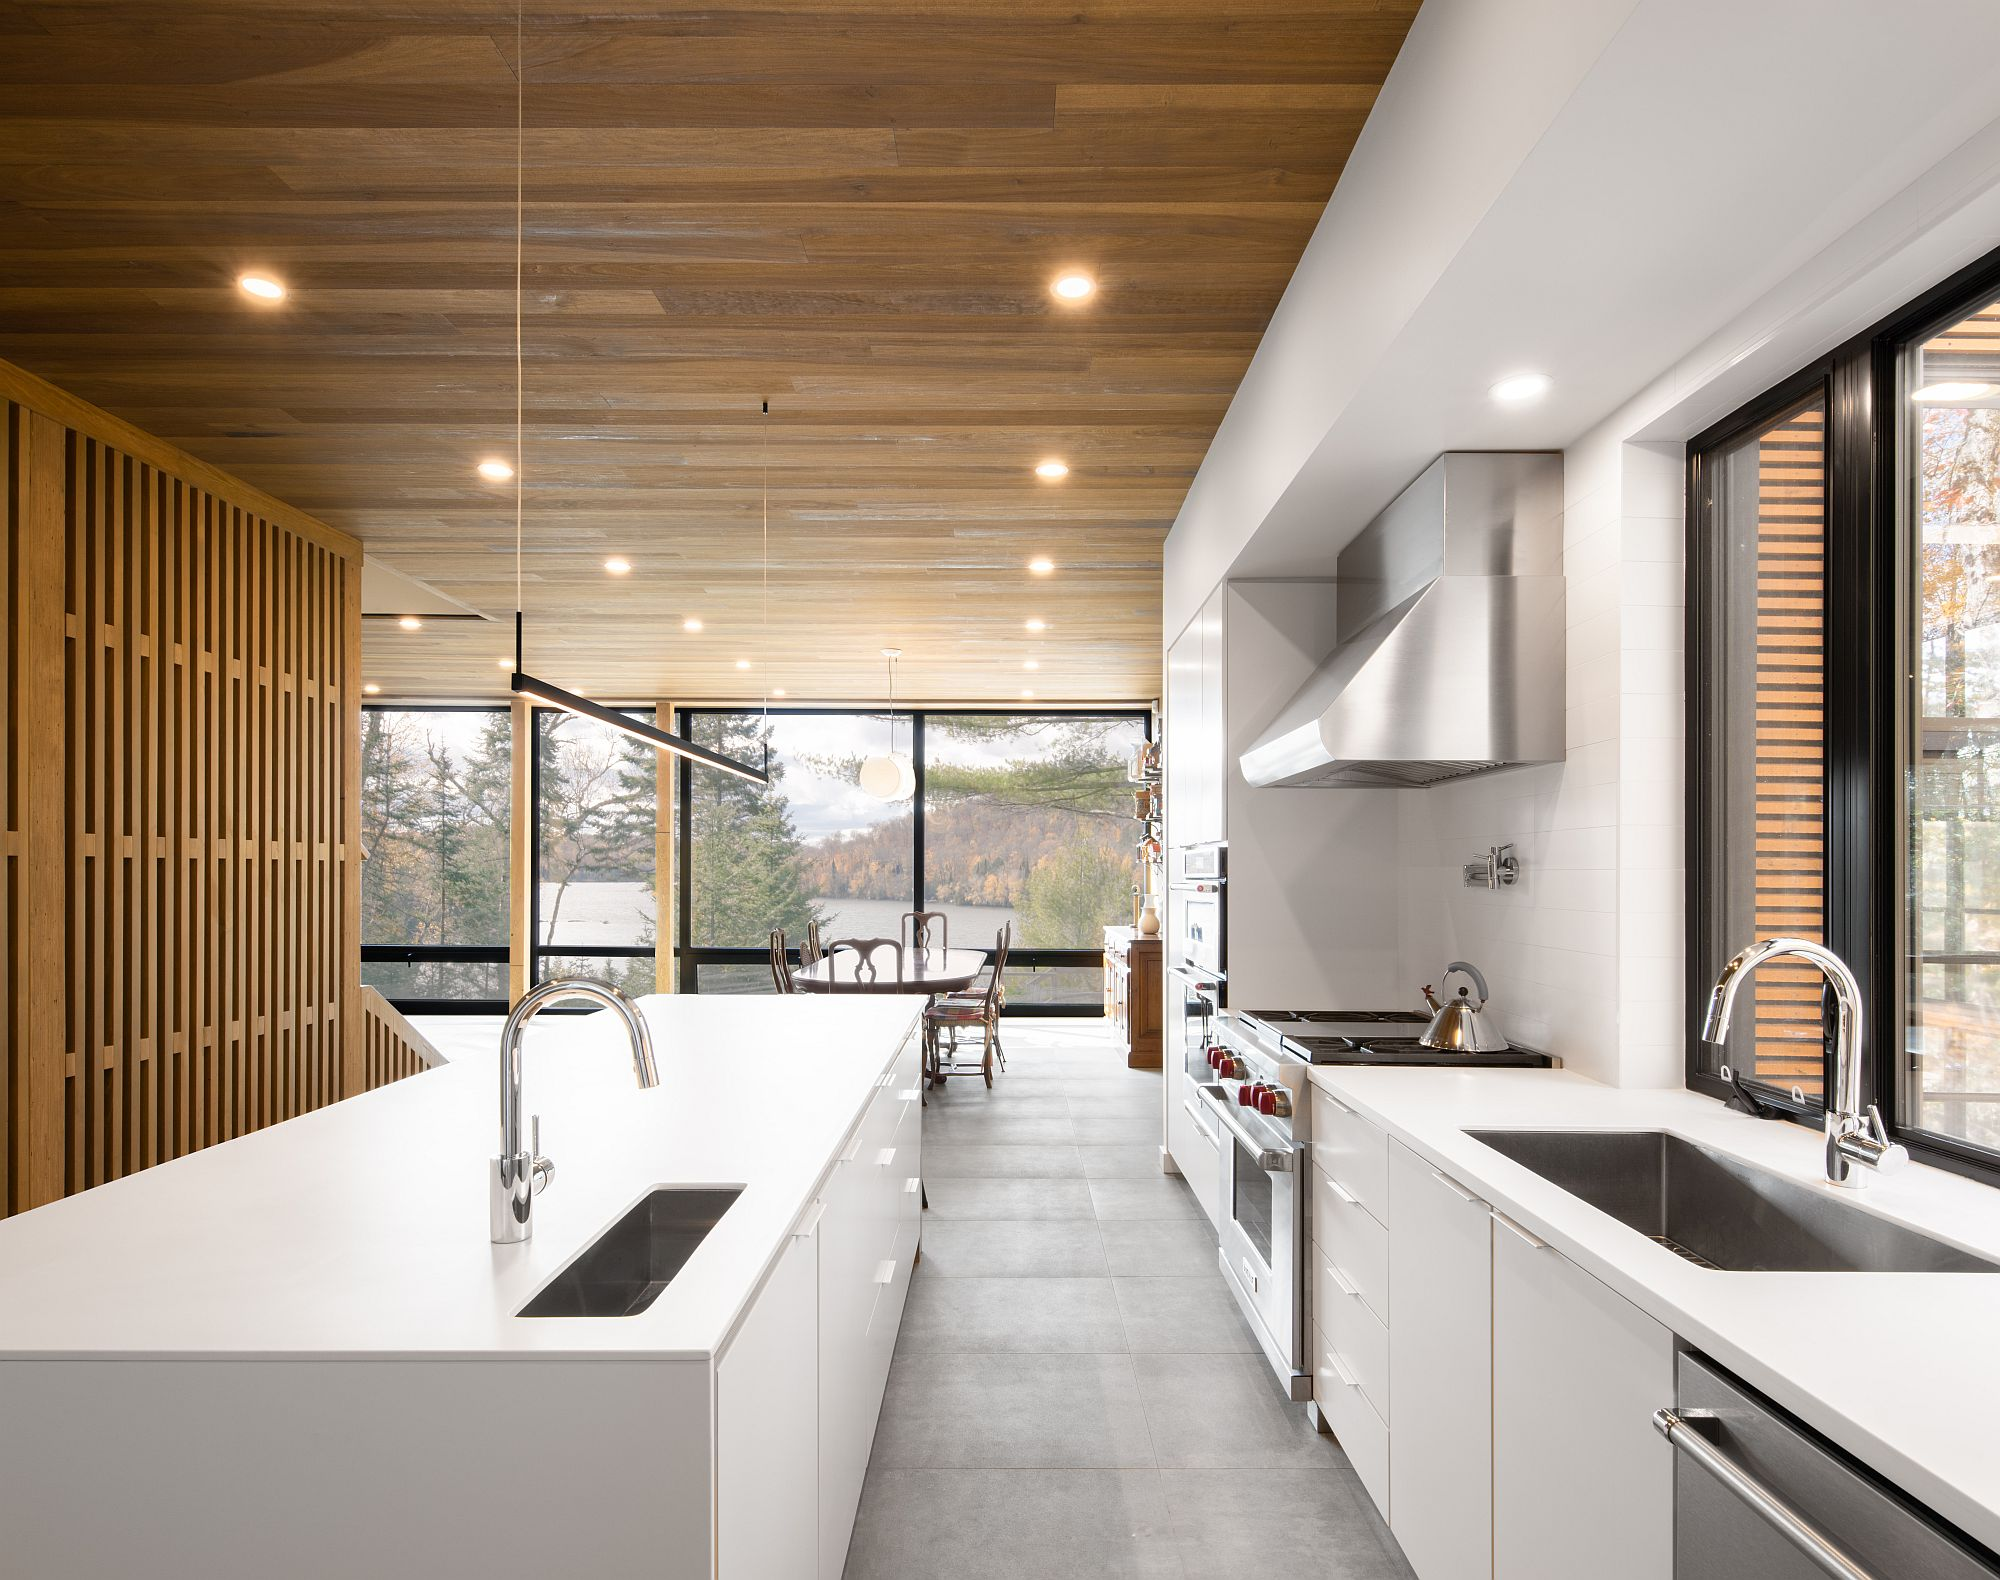 Wood and white interior of the houe with ample natural light and space-savvy design